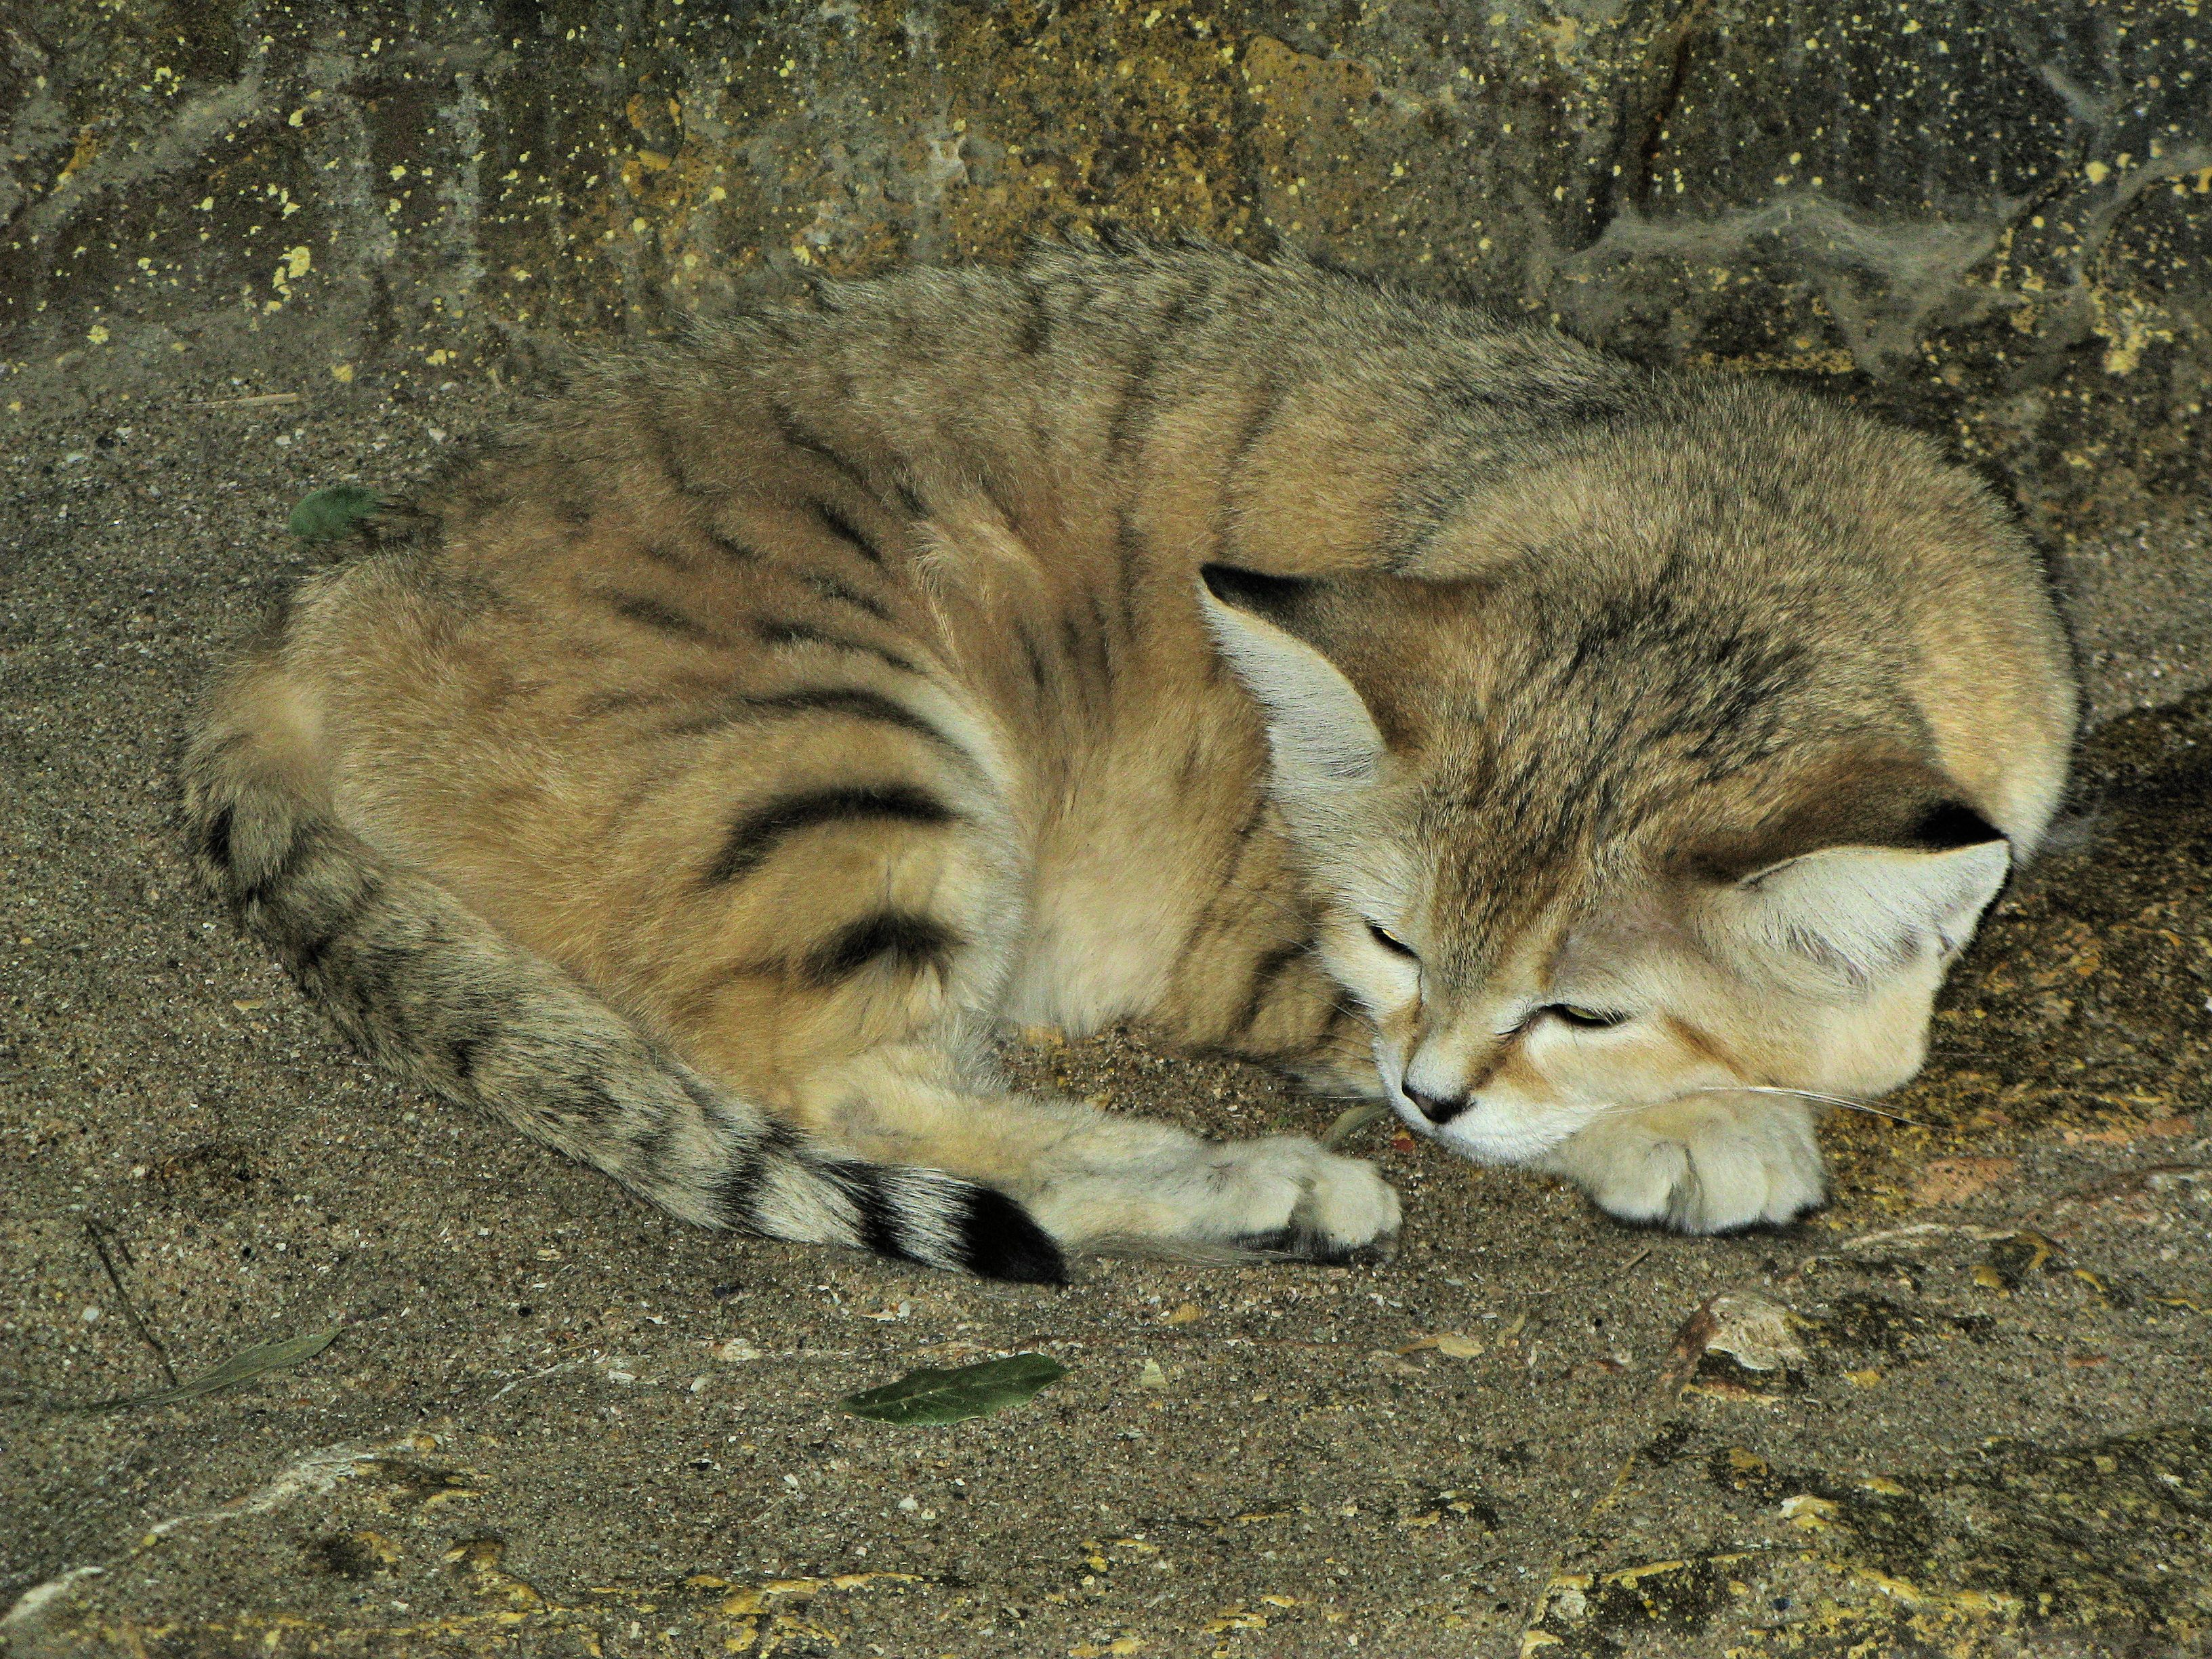 A very rare cat, the Chinese desert cat is a well